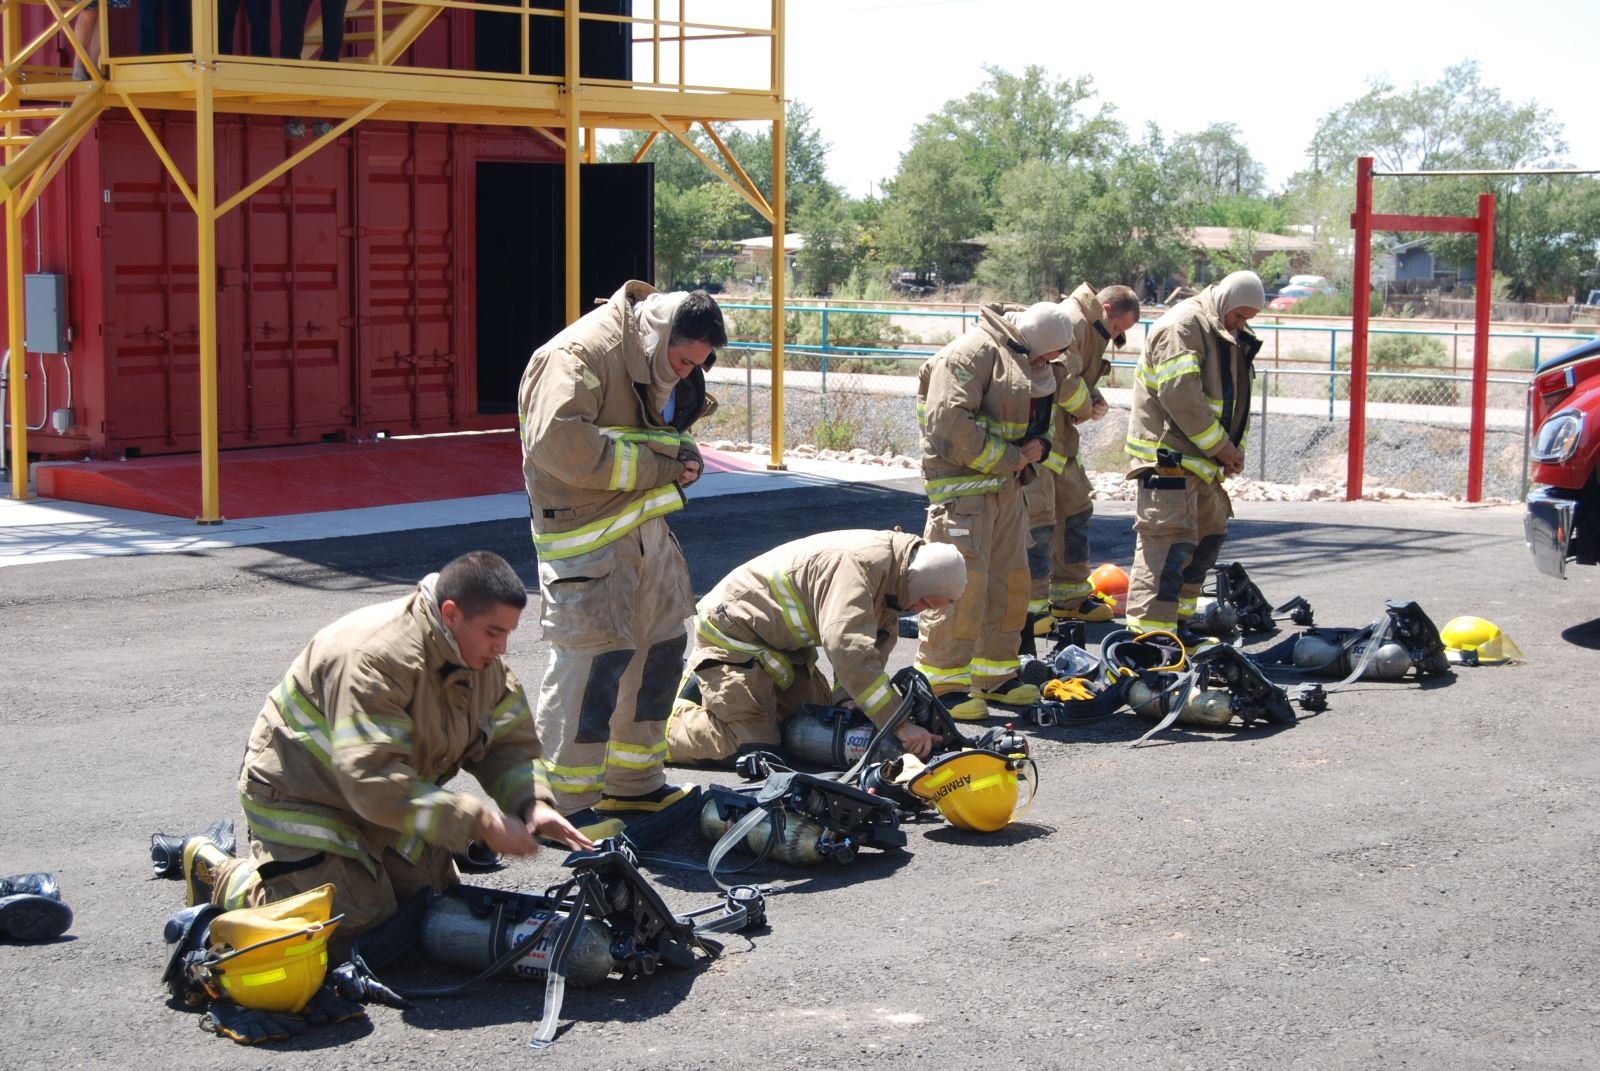 A picture of firefighters in their gear